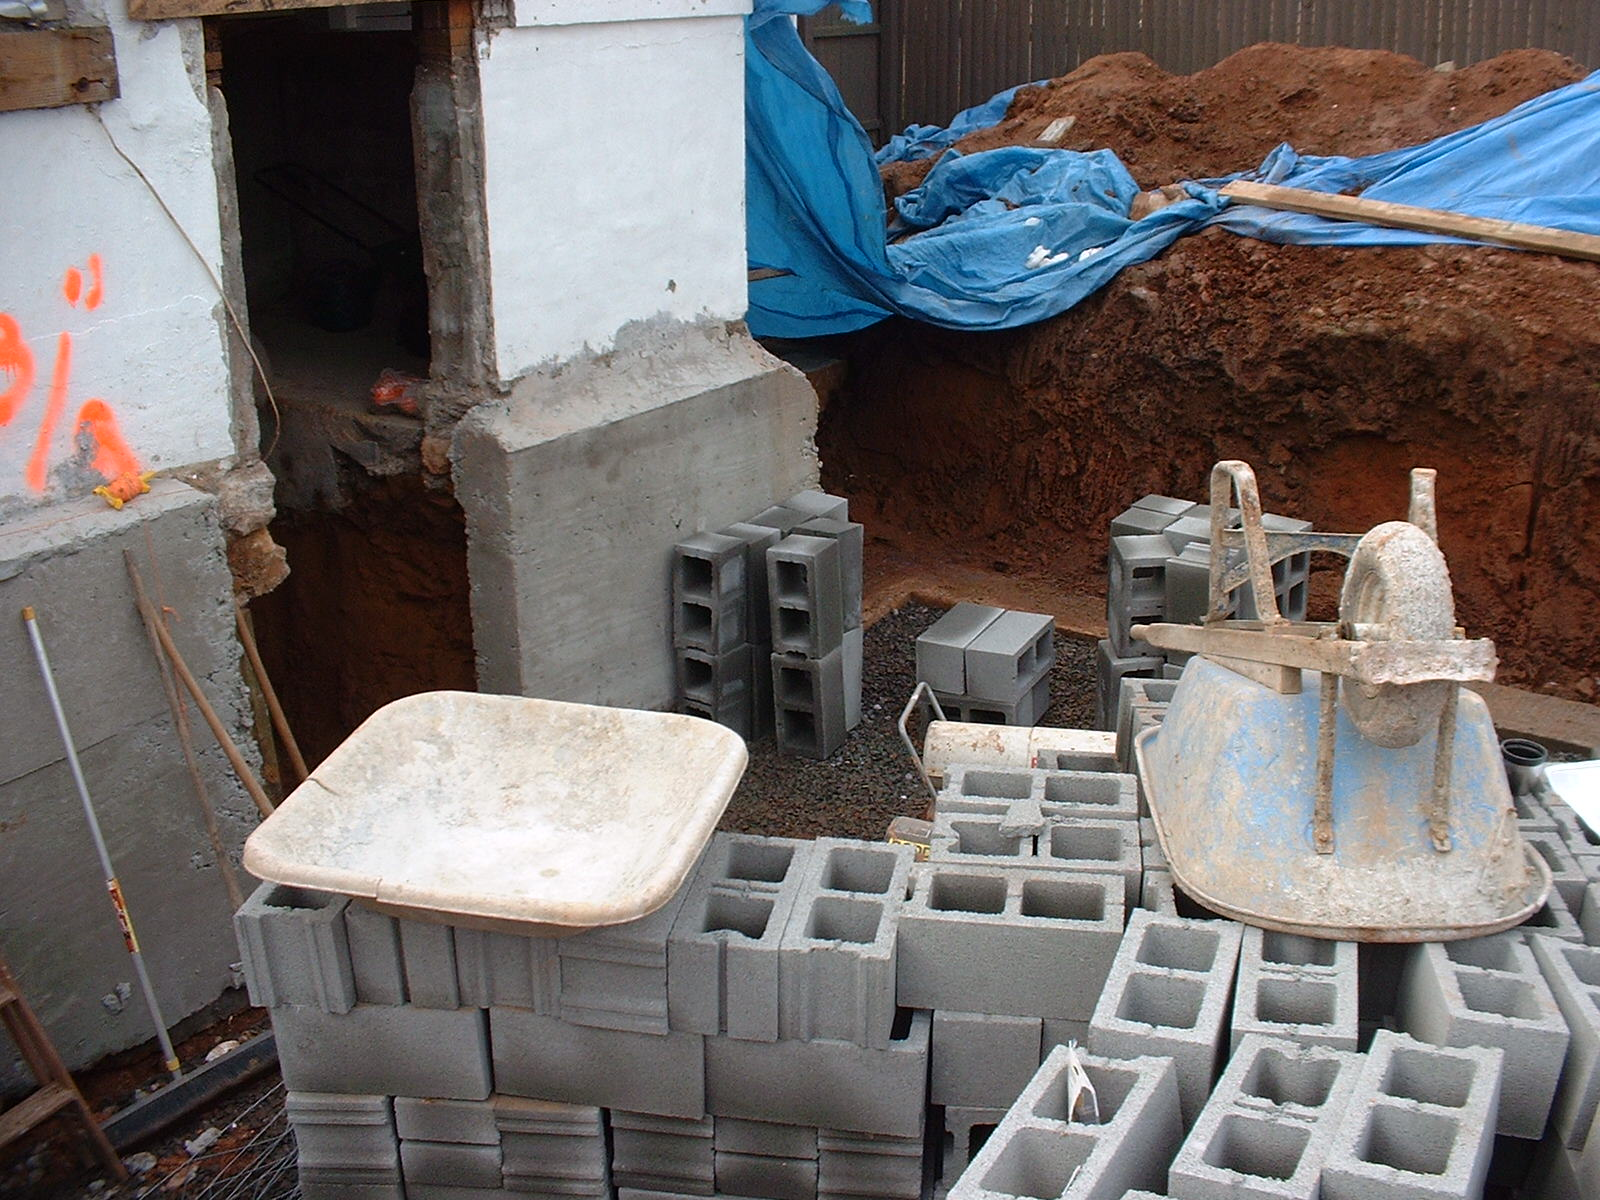 In this picture you can see the concrete is poured to support the existing walls.